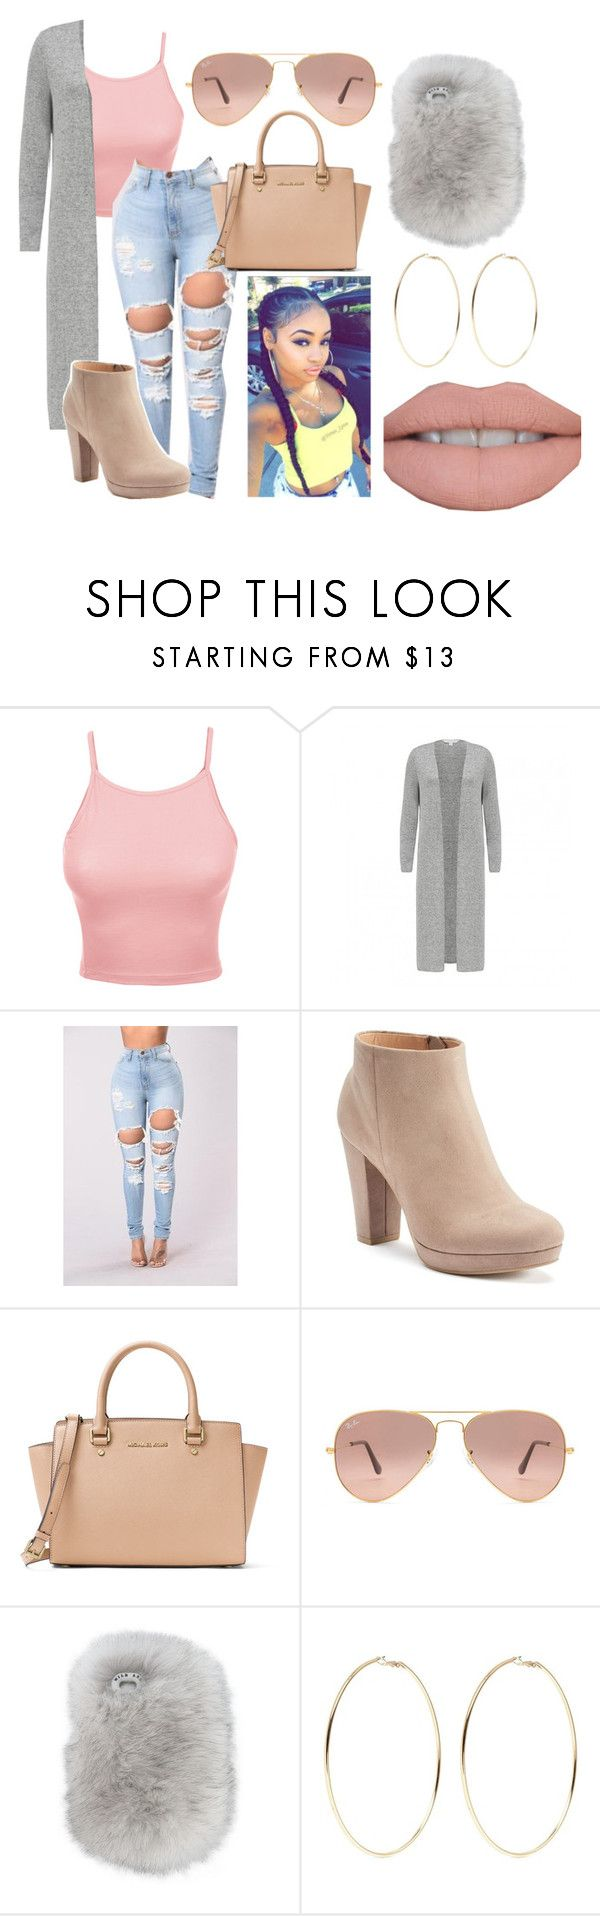 """""""Untitled #66"""" by bvbydest on Polyvore featuring LE3NO, LC Lauren Conrad, MICHAEL Michael Kors, Ray-Ban, Wild & Woolly and Kenneth Jay Lane"""